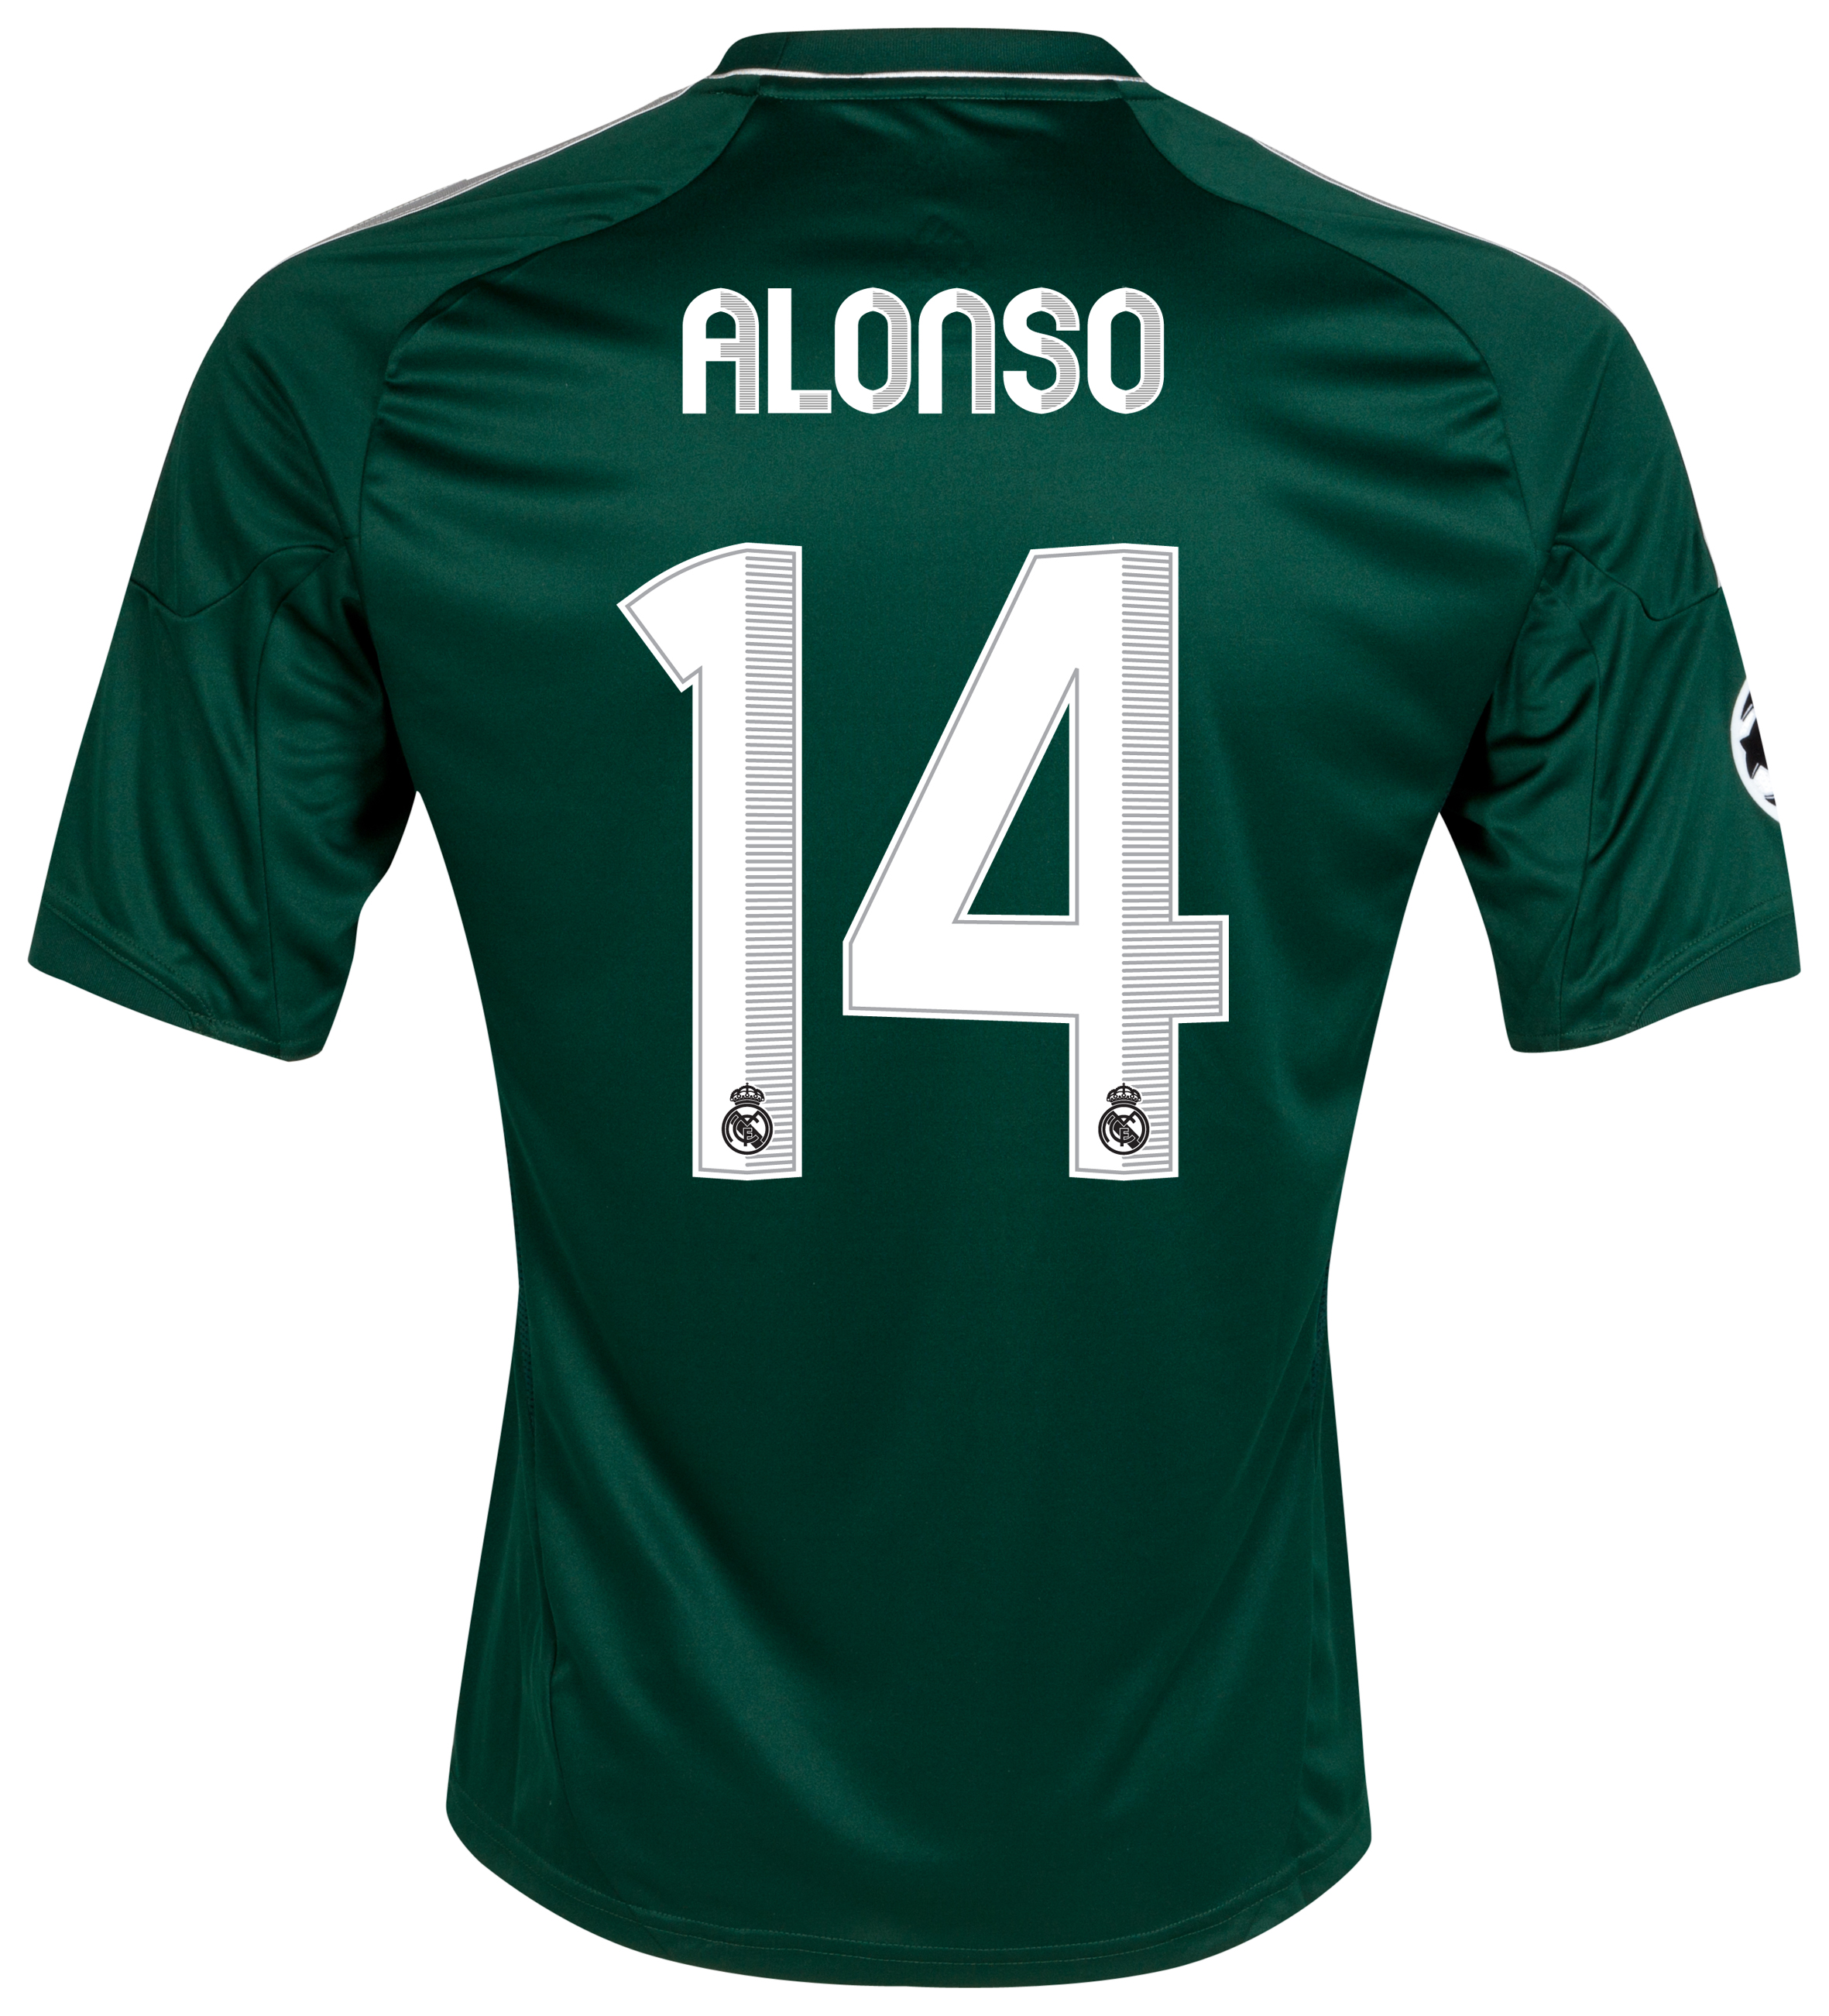 Real Madrid UEFA Champions League Third Shirt 2012/13 with Alonso 14 printing